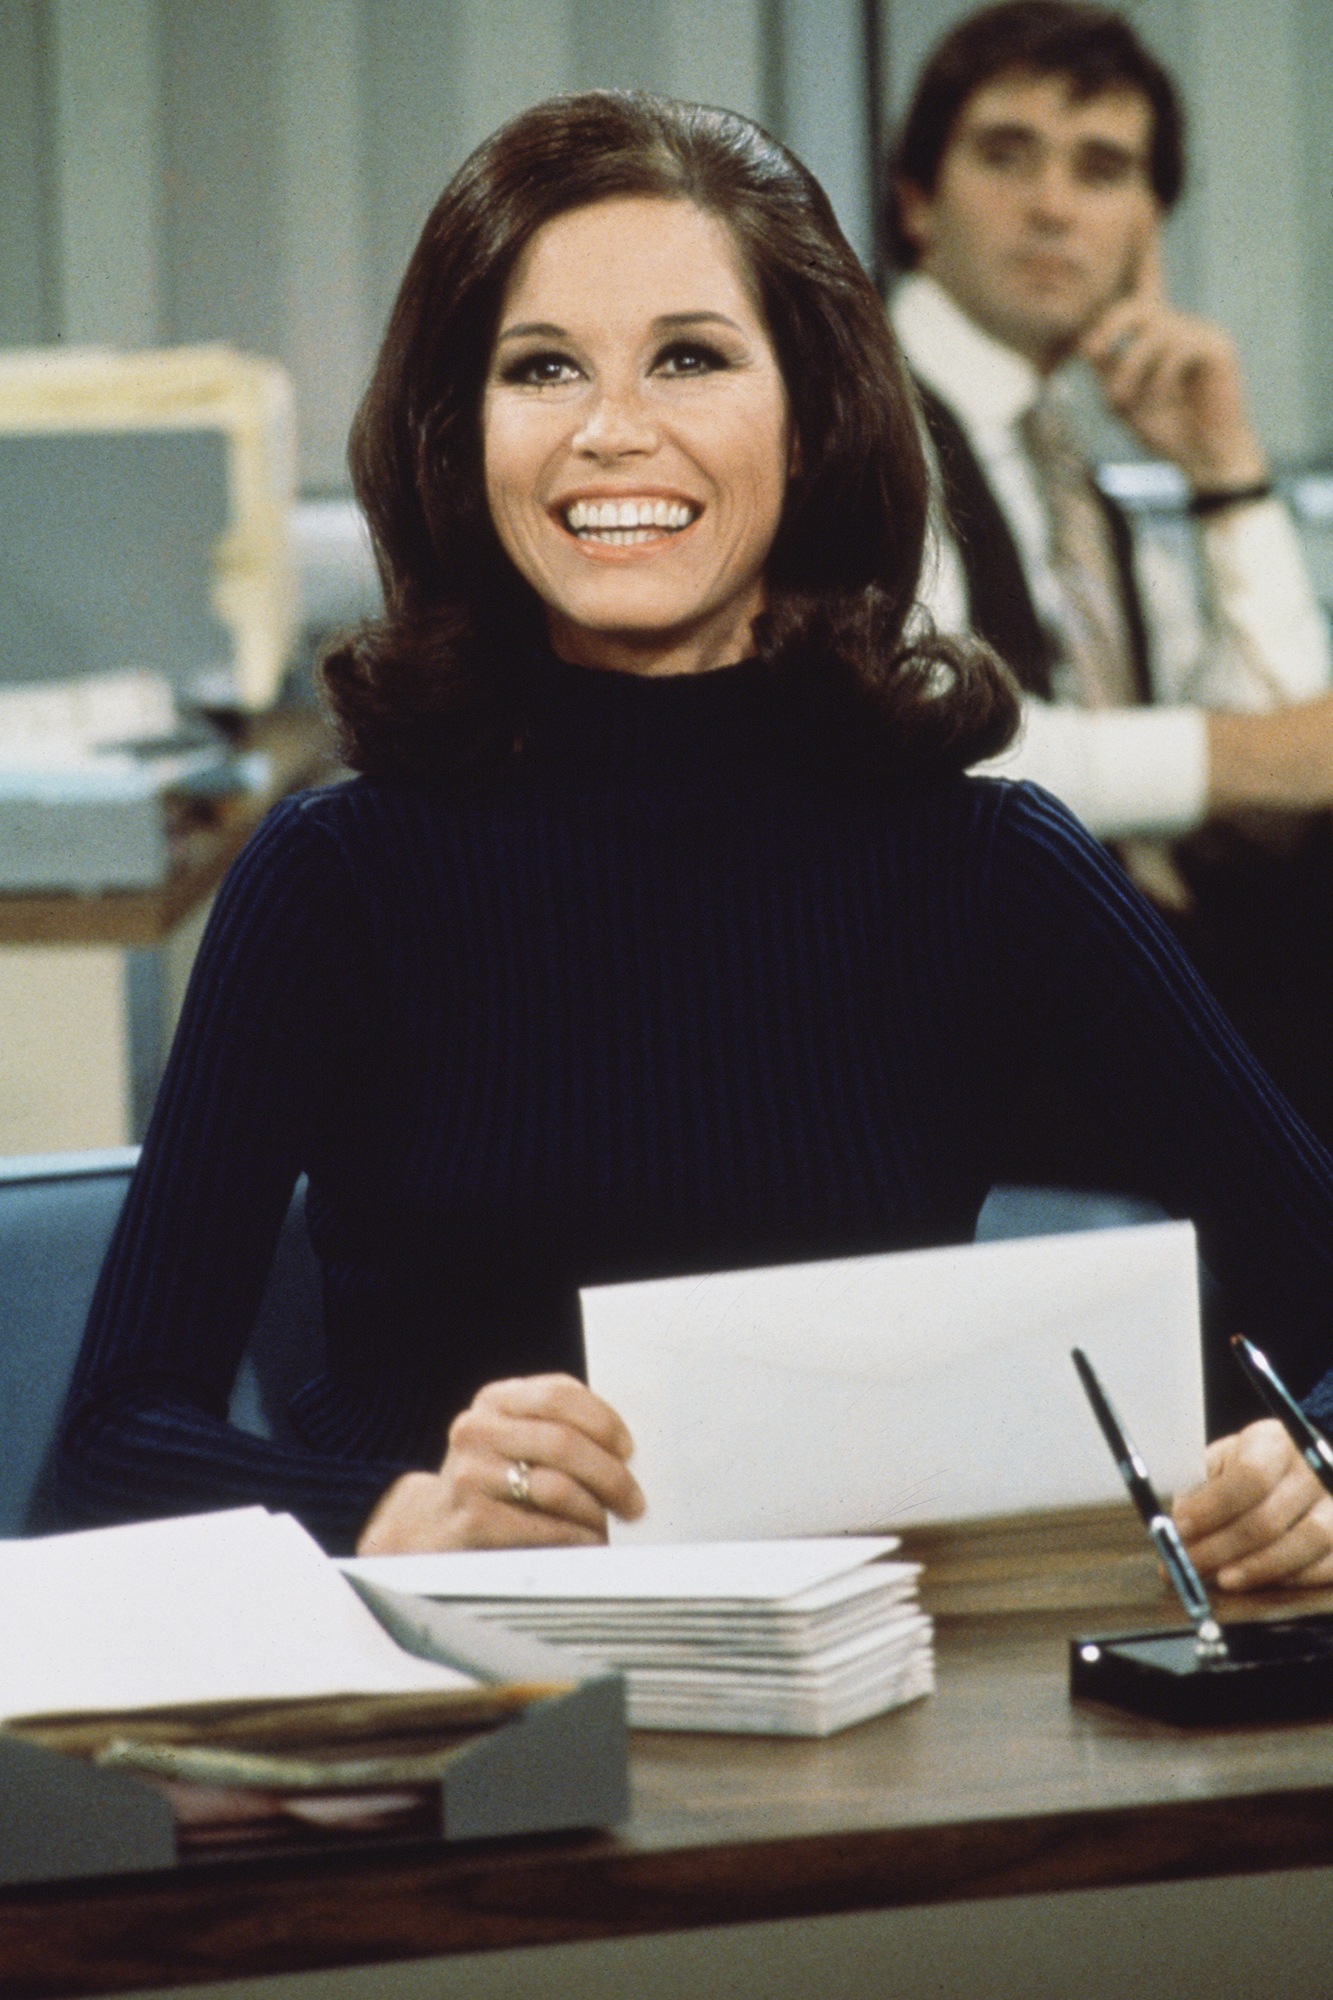 Mary Tyler Moore during The Mary Tyler Moore Show in 1970 in Los Angeles.